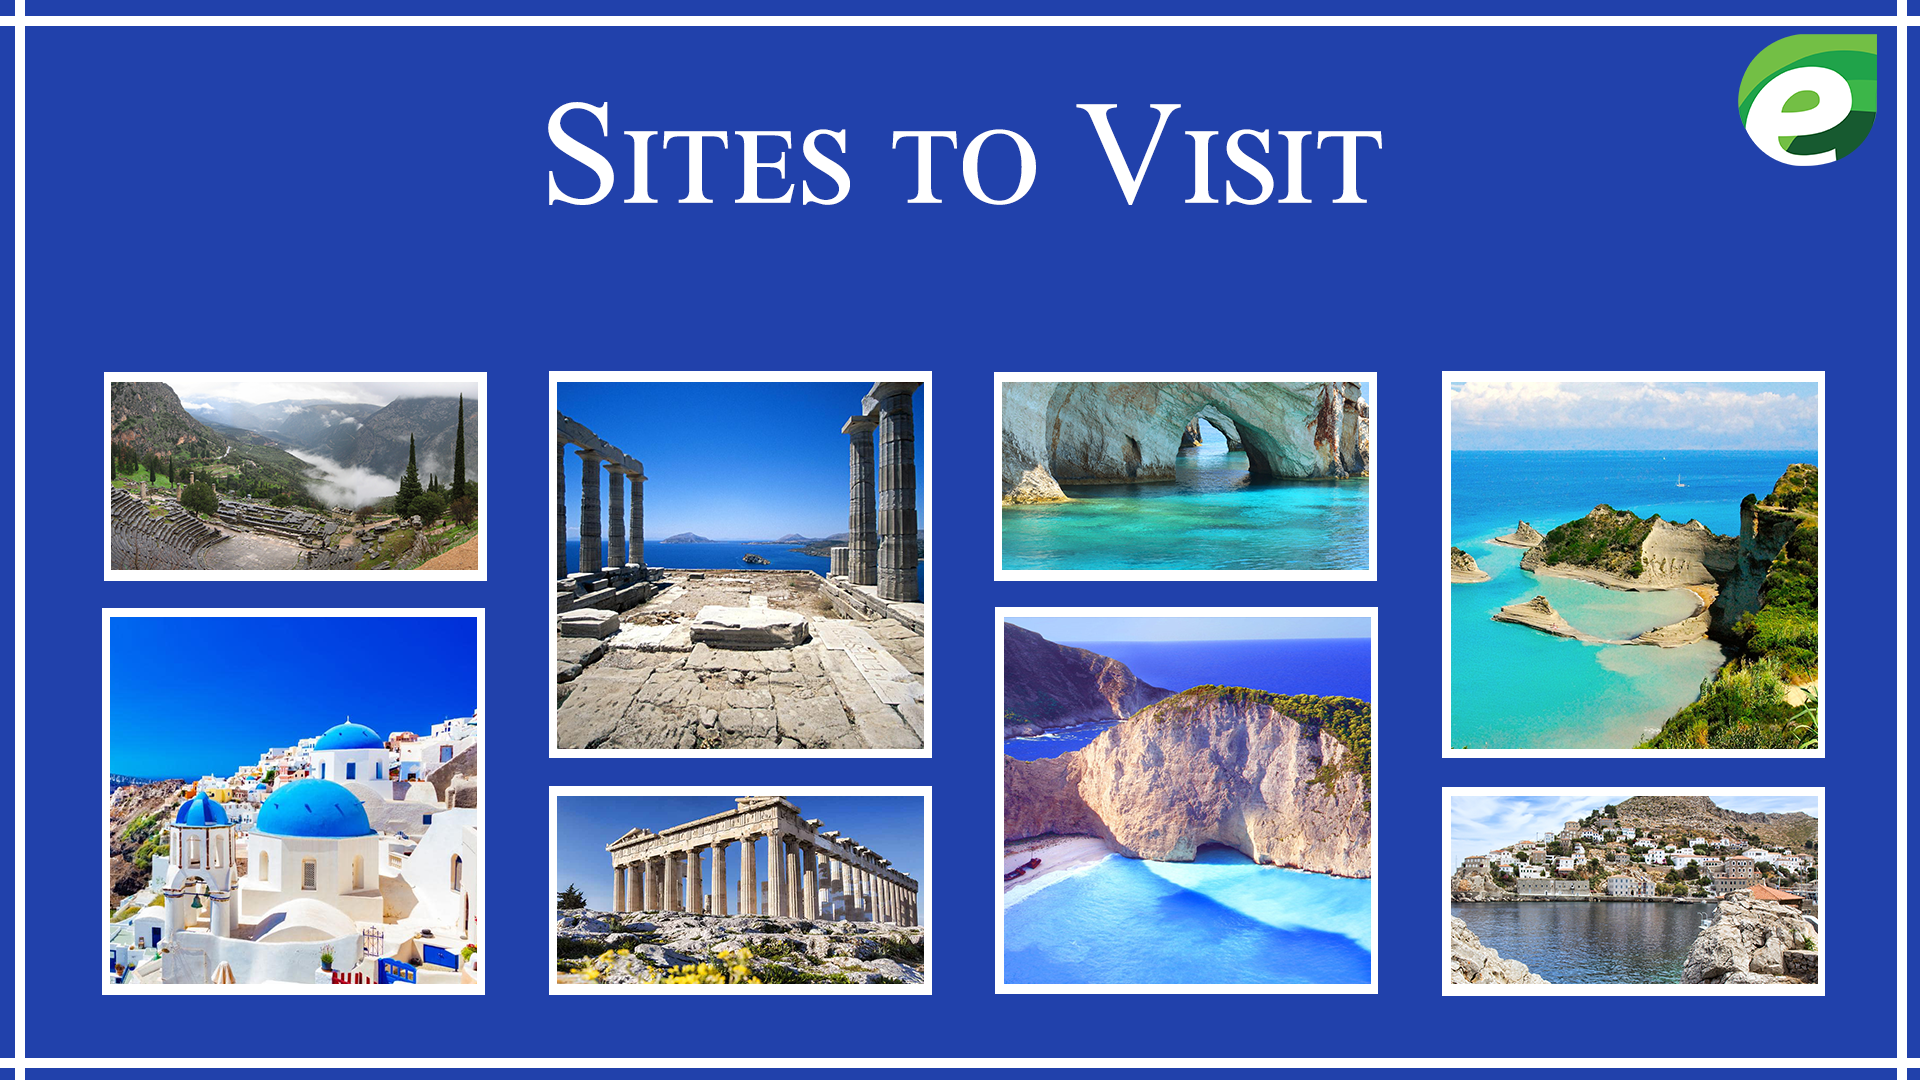 tips to travel Greece - sites to visit